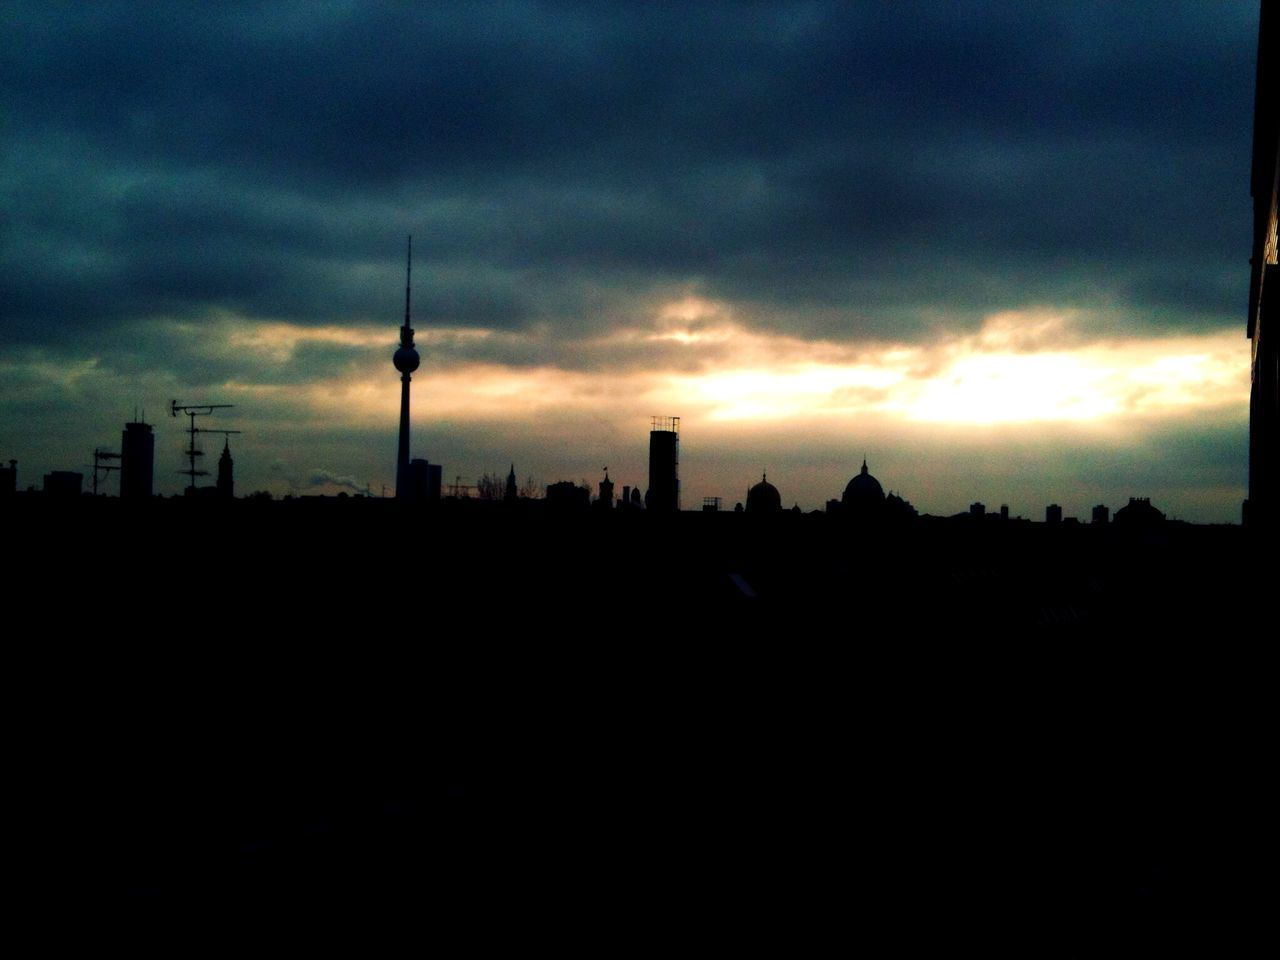 Silhouette city against cloudy sky